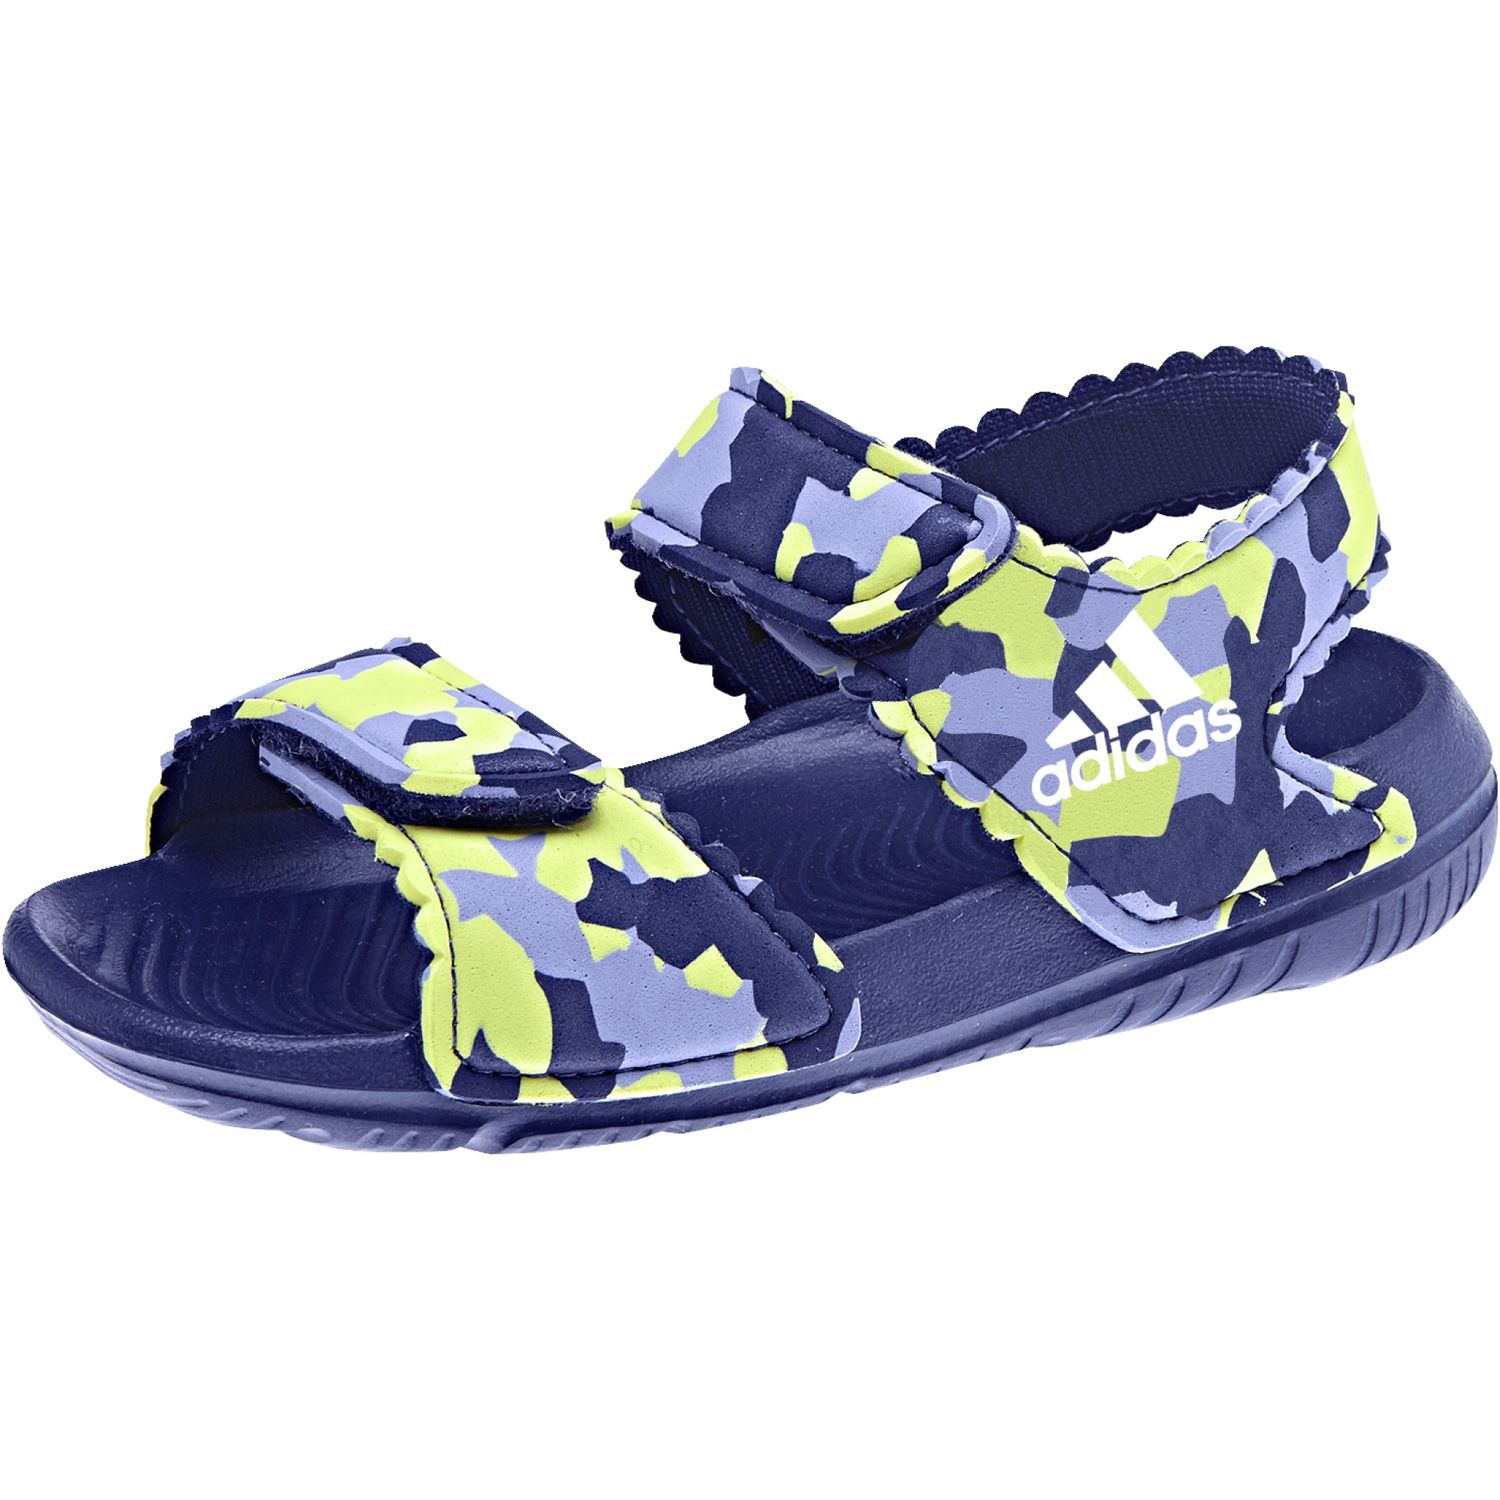 pretty nice a2d51 39154 adidas kids water sandal AltaSwim C Beach Sandals DA9663 real purple SALE